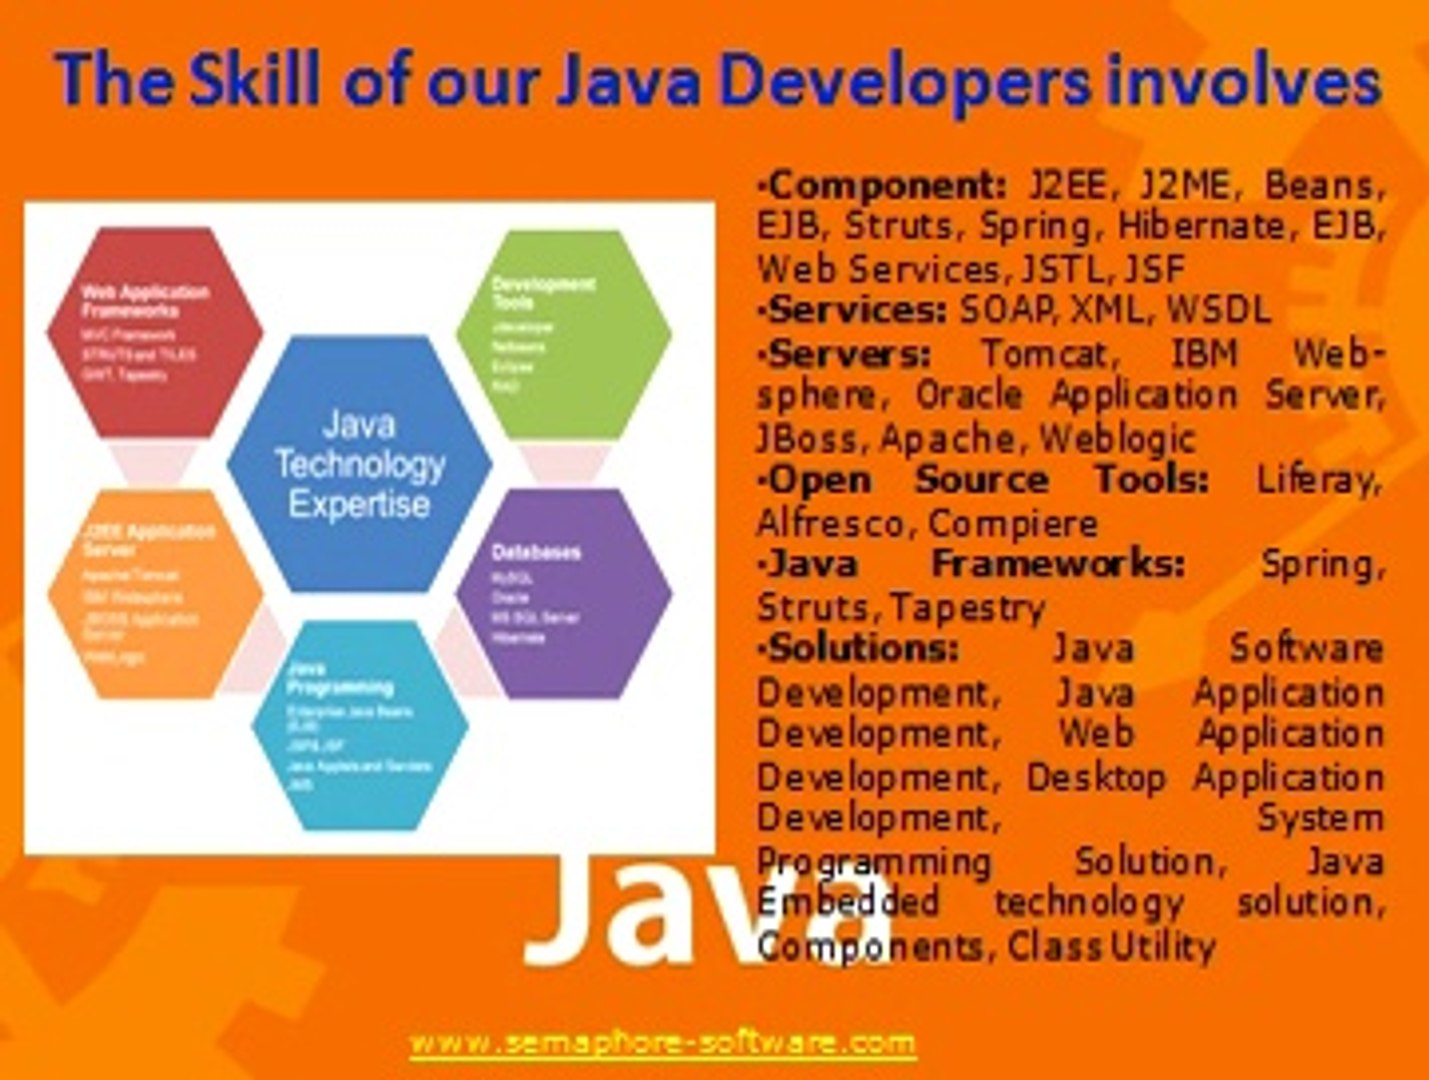 Java Application Development Services on Different Platforms